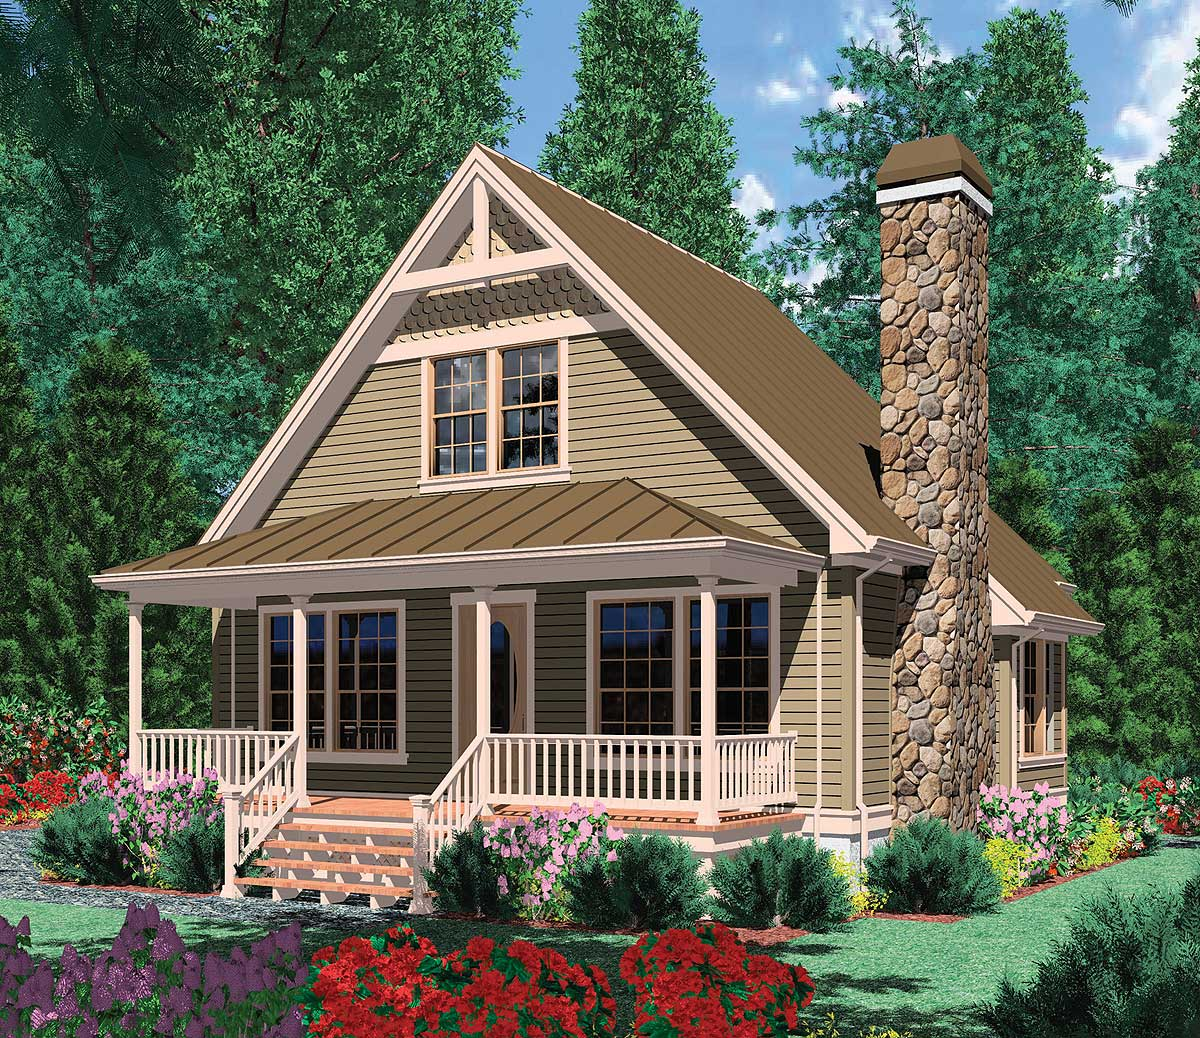 Home Plans: Architectural Designs - House